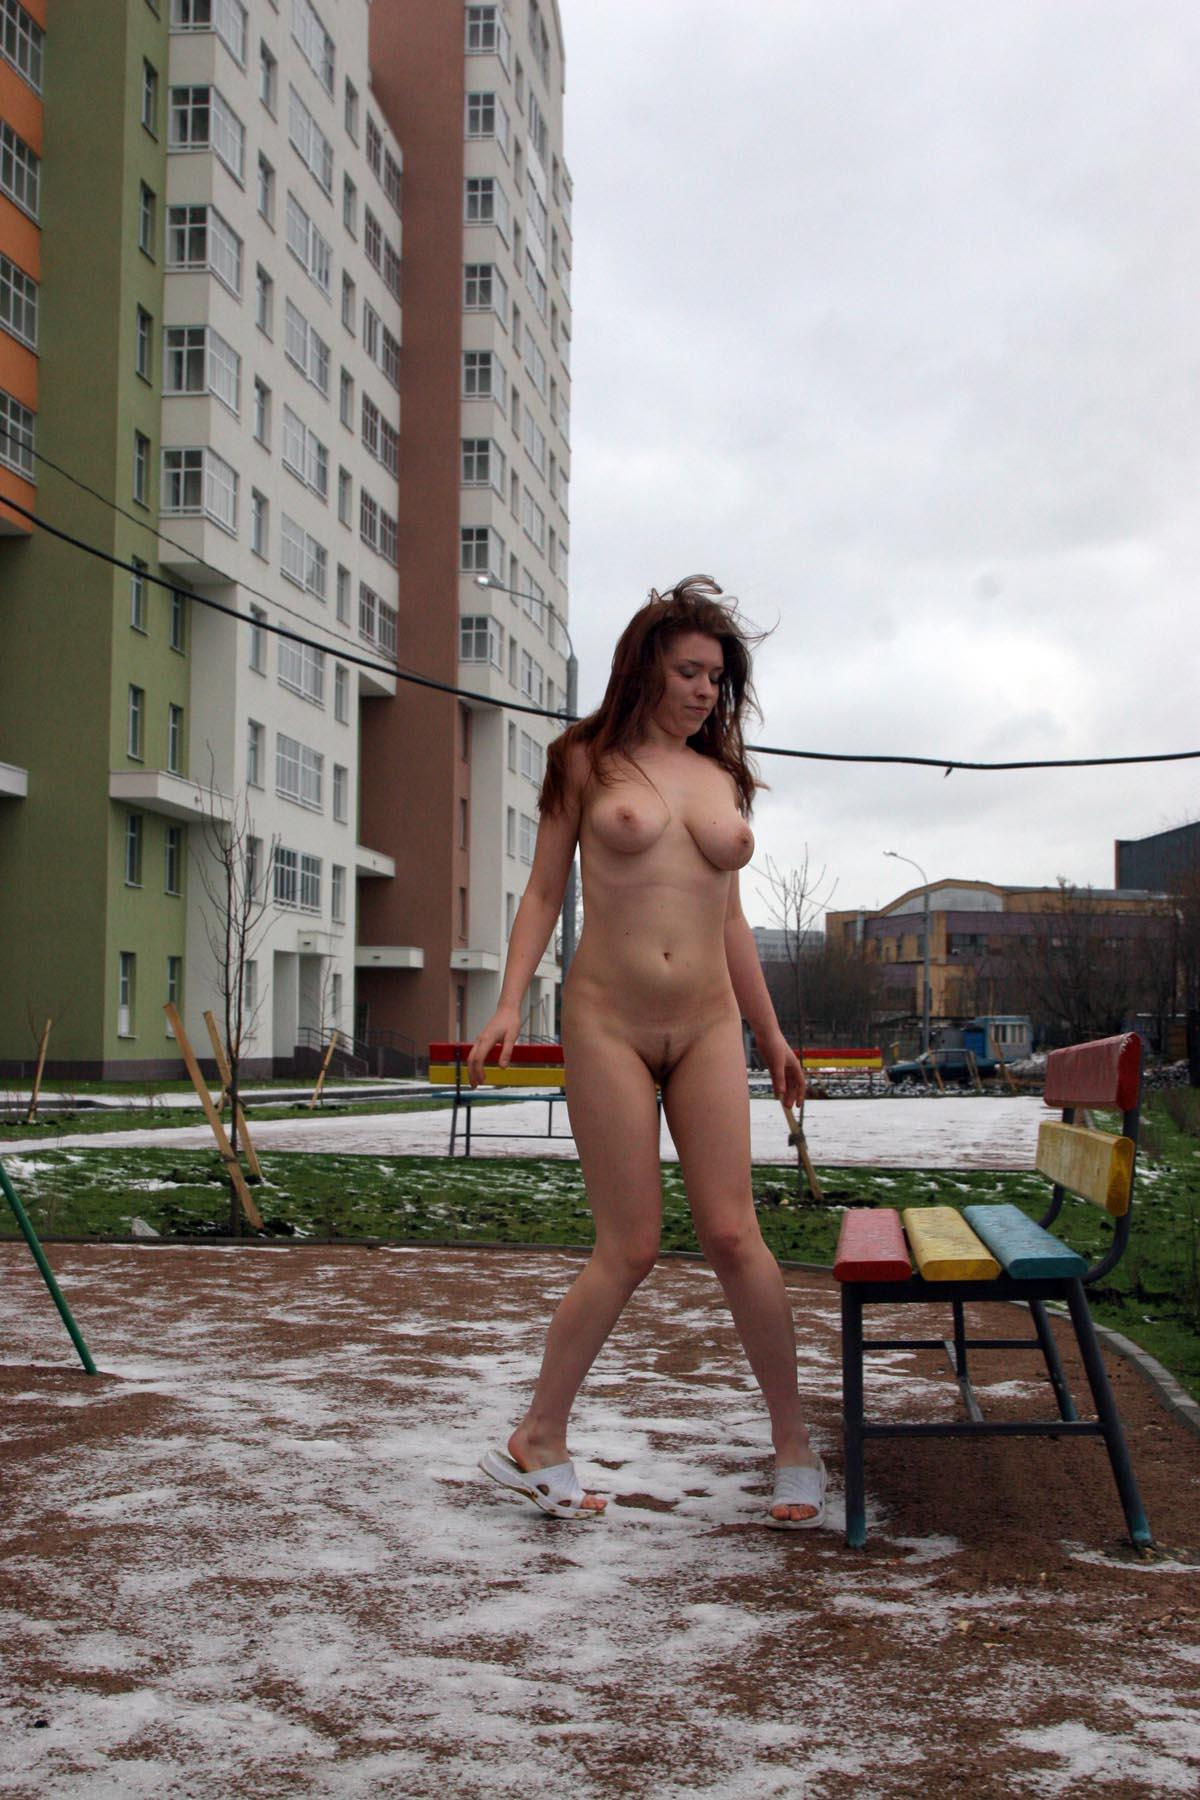 Russian Redhead Chick With Tattoo Posing Naked At Yard -1743